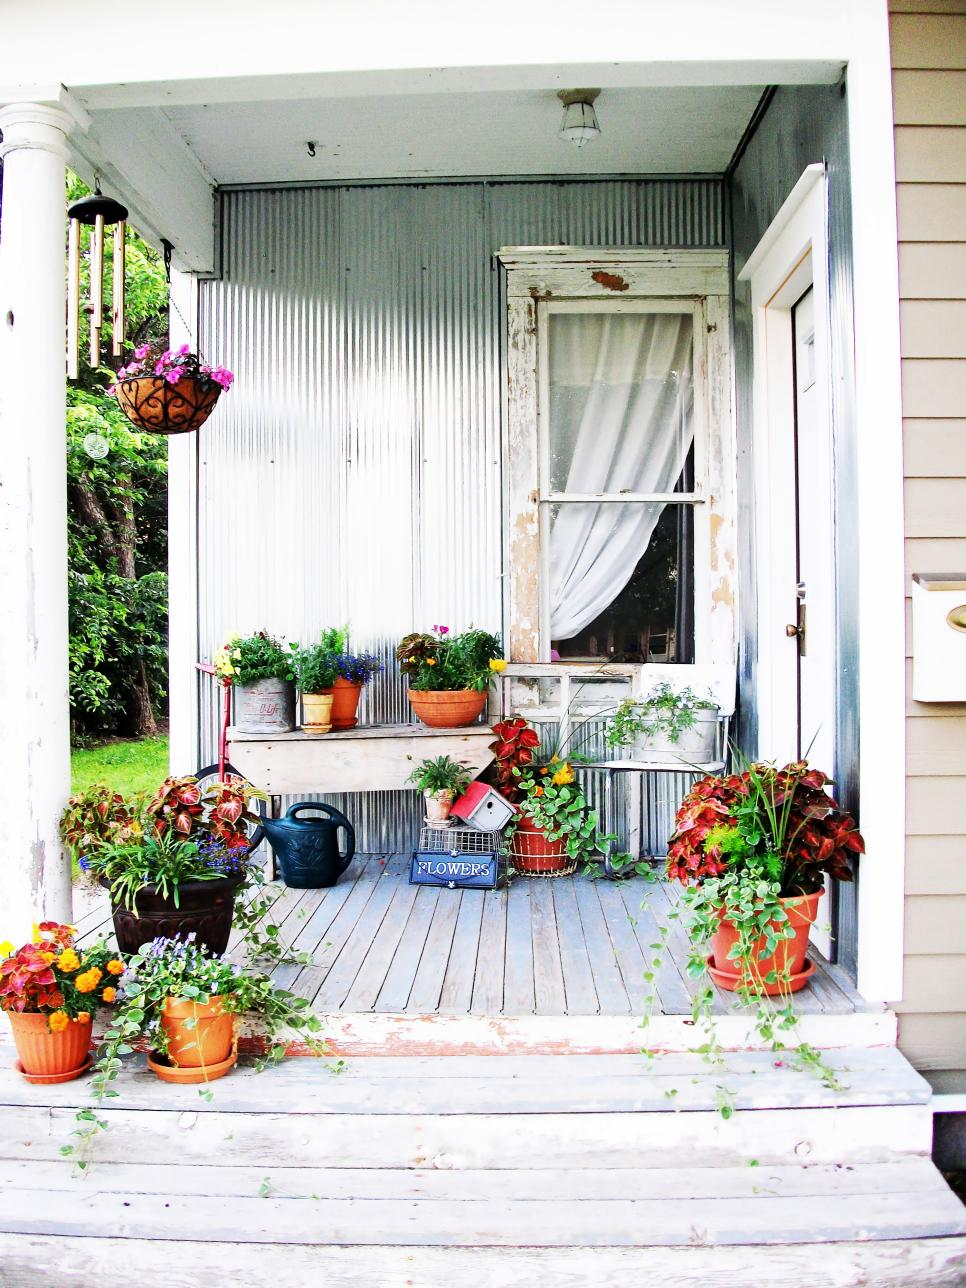 shabby chic decorating ideas for porches and gardens outdoor spaces patio ideas decks gardens hgtv